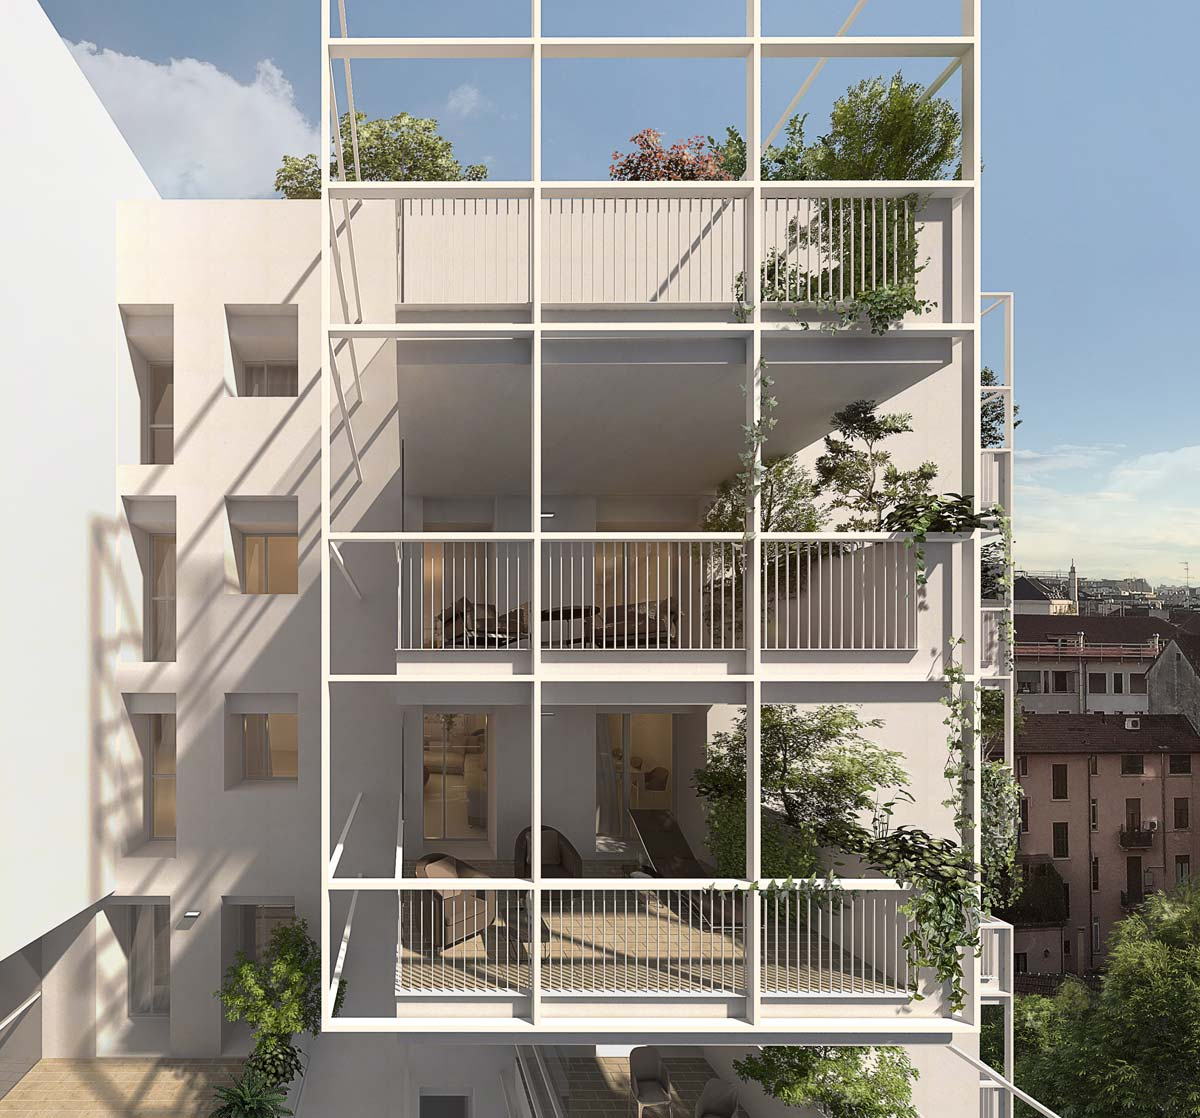 Render of the balconies, framed by white metallic grid